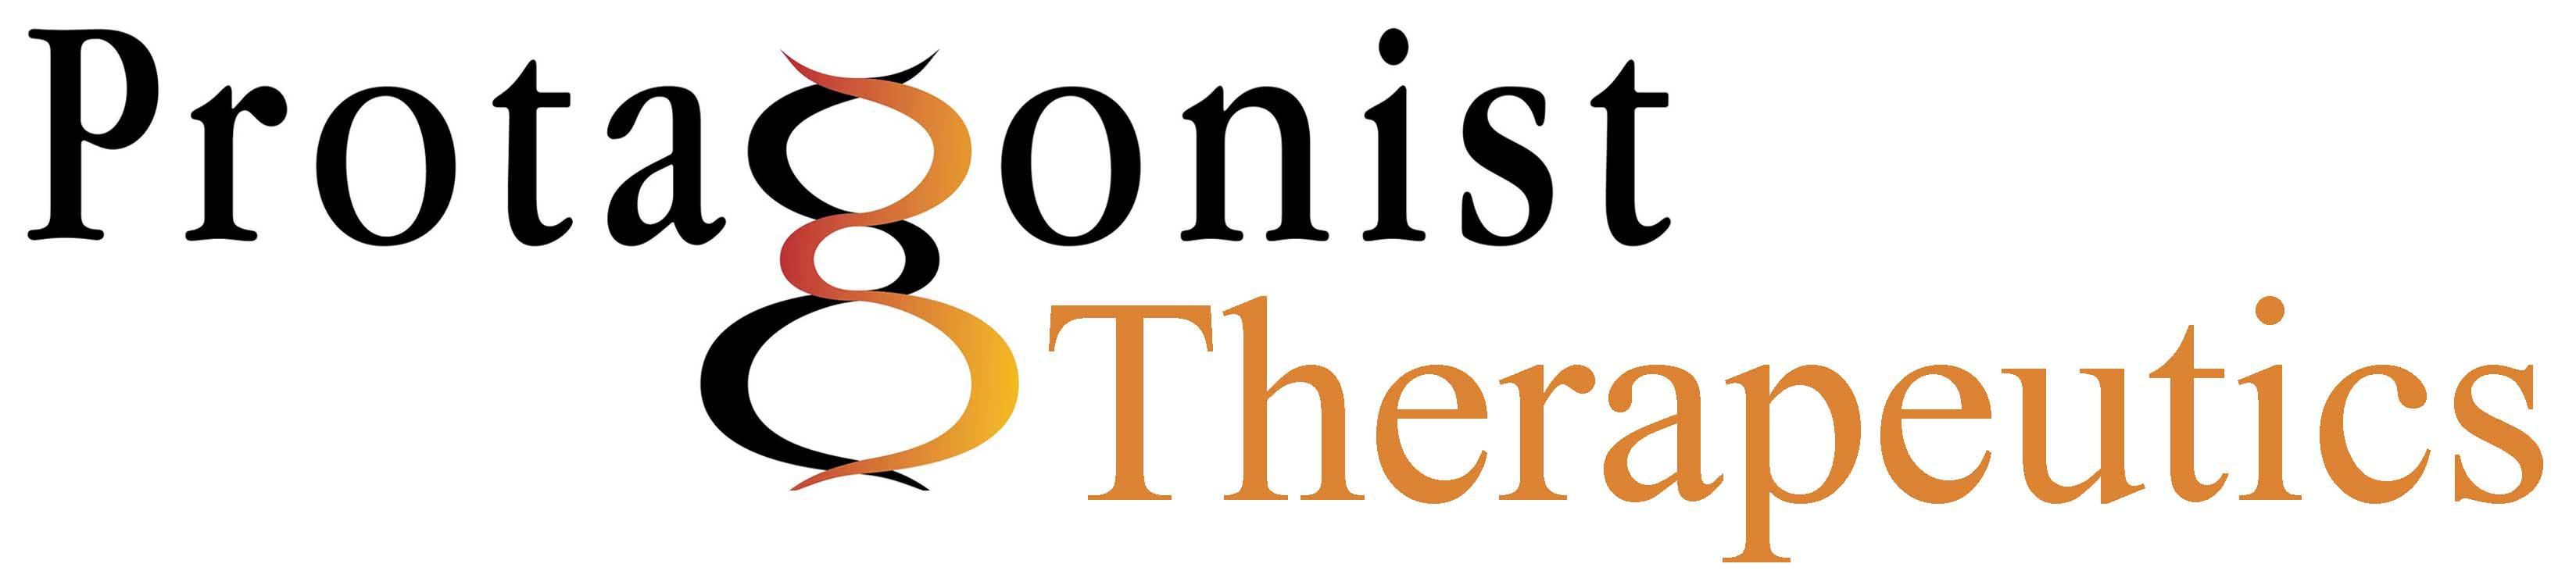 Protagonist Therapeutics Inc